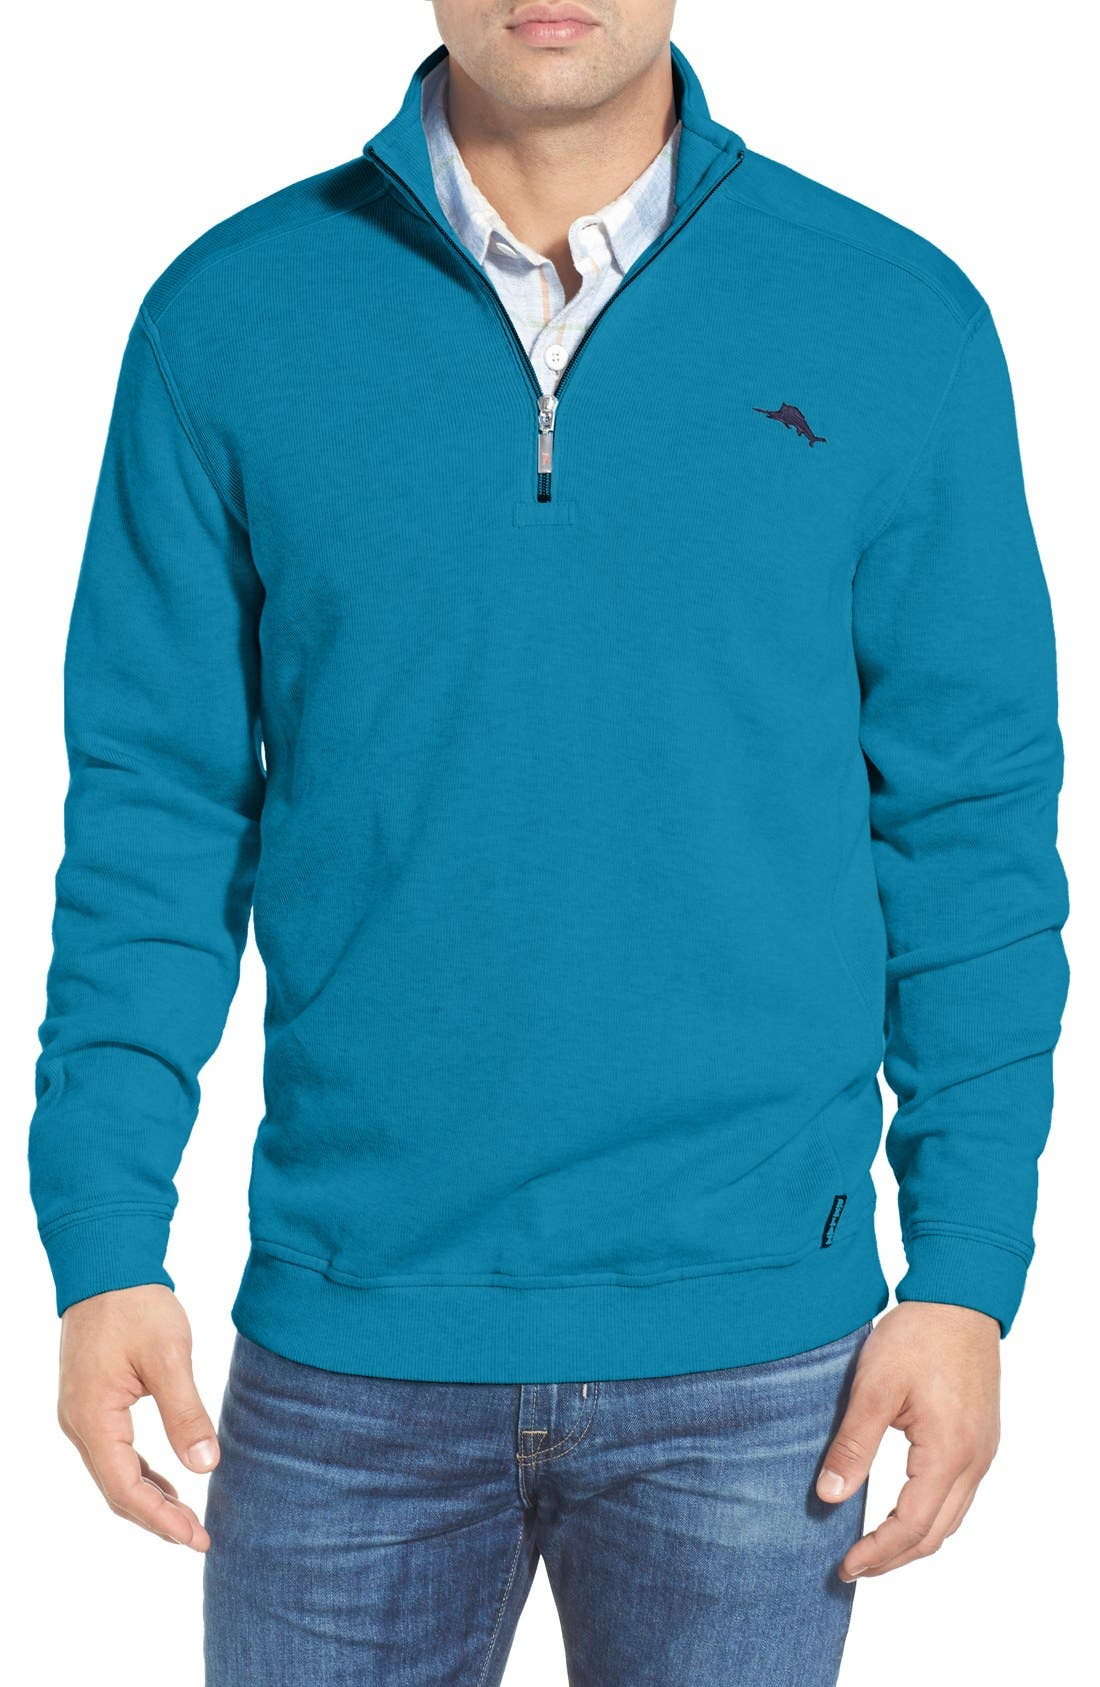 Alternate Image 1 Selected - Tommy Bahama 'Antigua' Half Zip Pullover (Big & Tall)